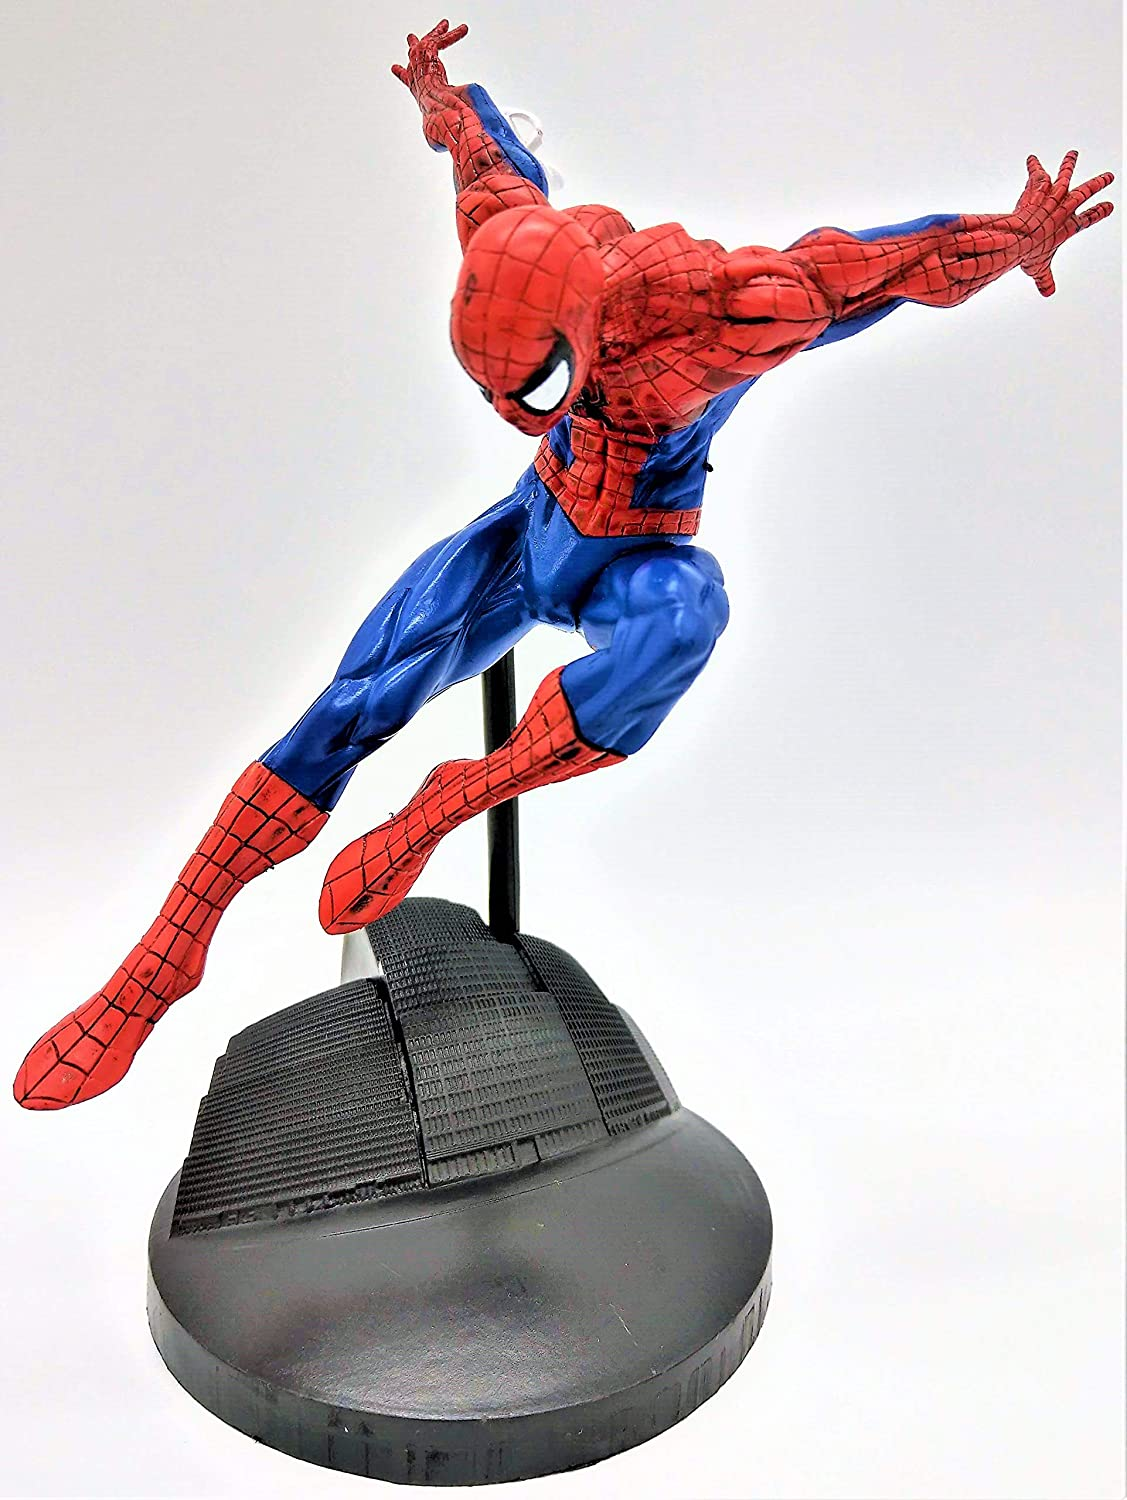 Amazing Flying Spiderman Action Figure with Web Shooter / Spider-Man into The Spiderverse Action Figure (Comes with a Stand)